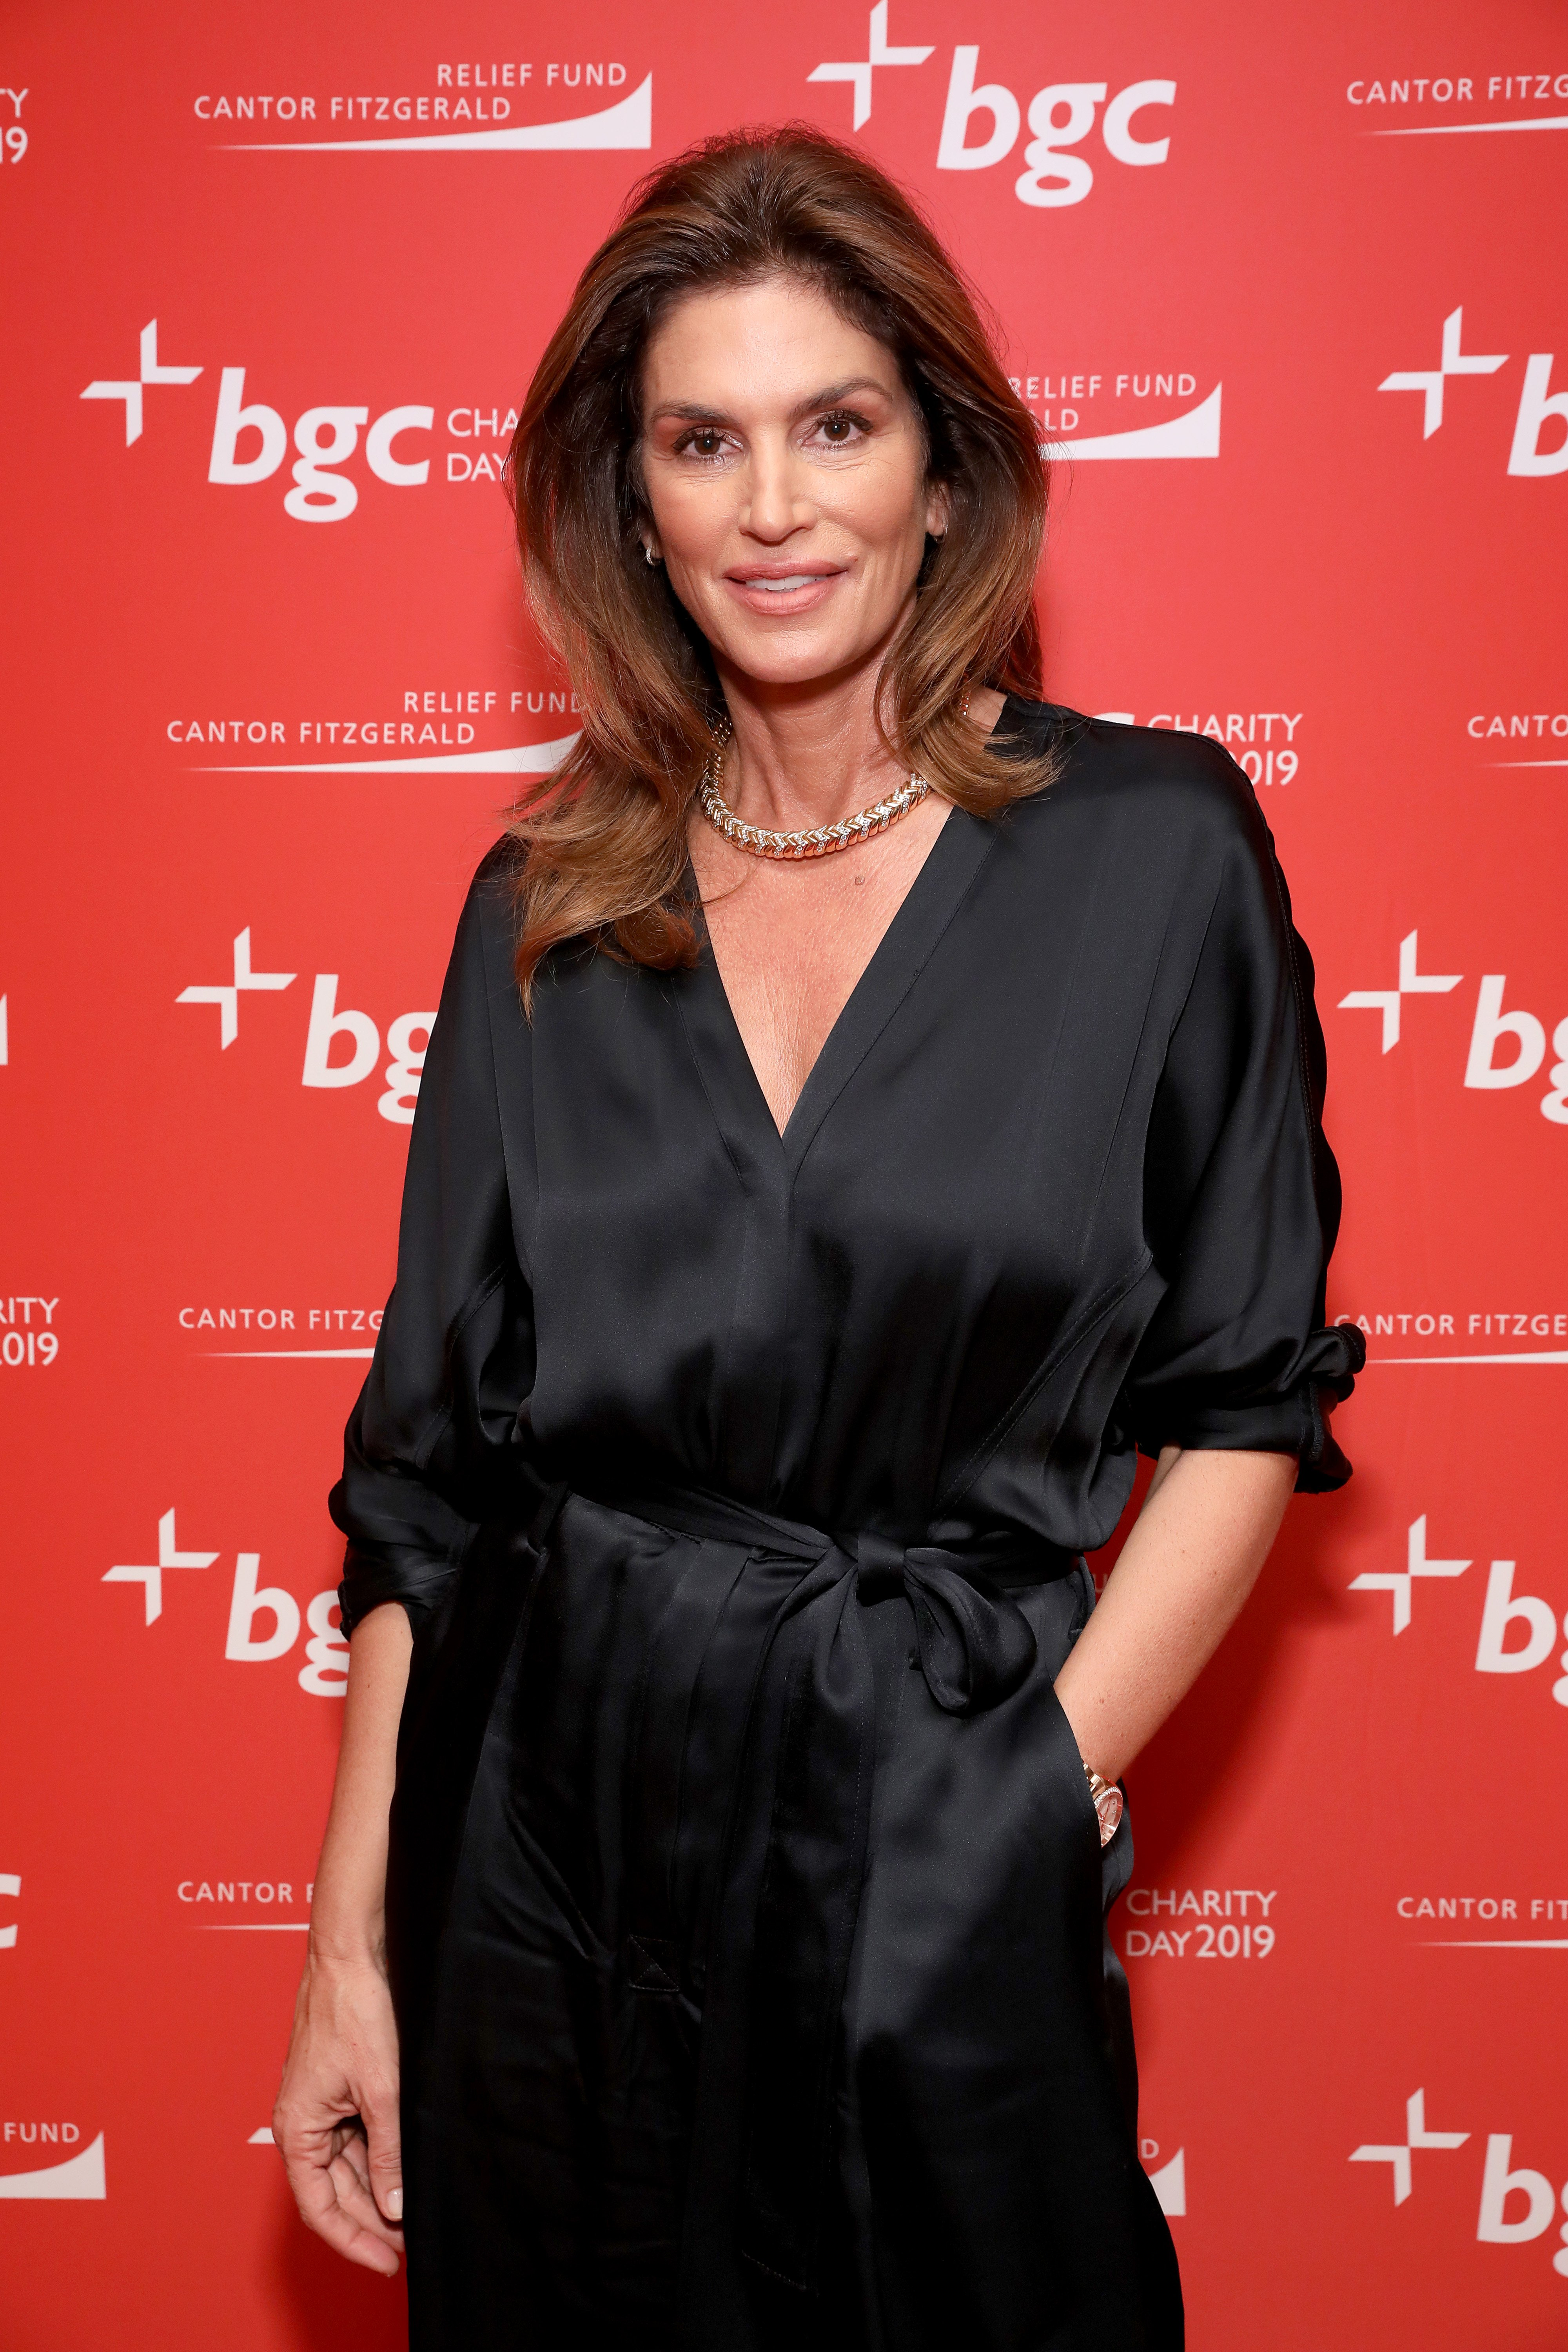 Cindy Crawford at the Annual Charity Day Hosted By Cantor Fitzgerald, BGC and GFI - BGC Office - Arrivals on September 11, 2019.   Photo: Getty Images